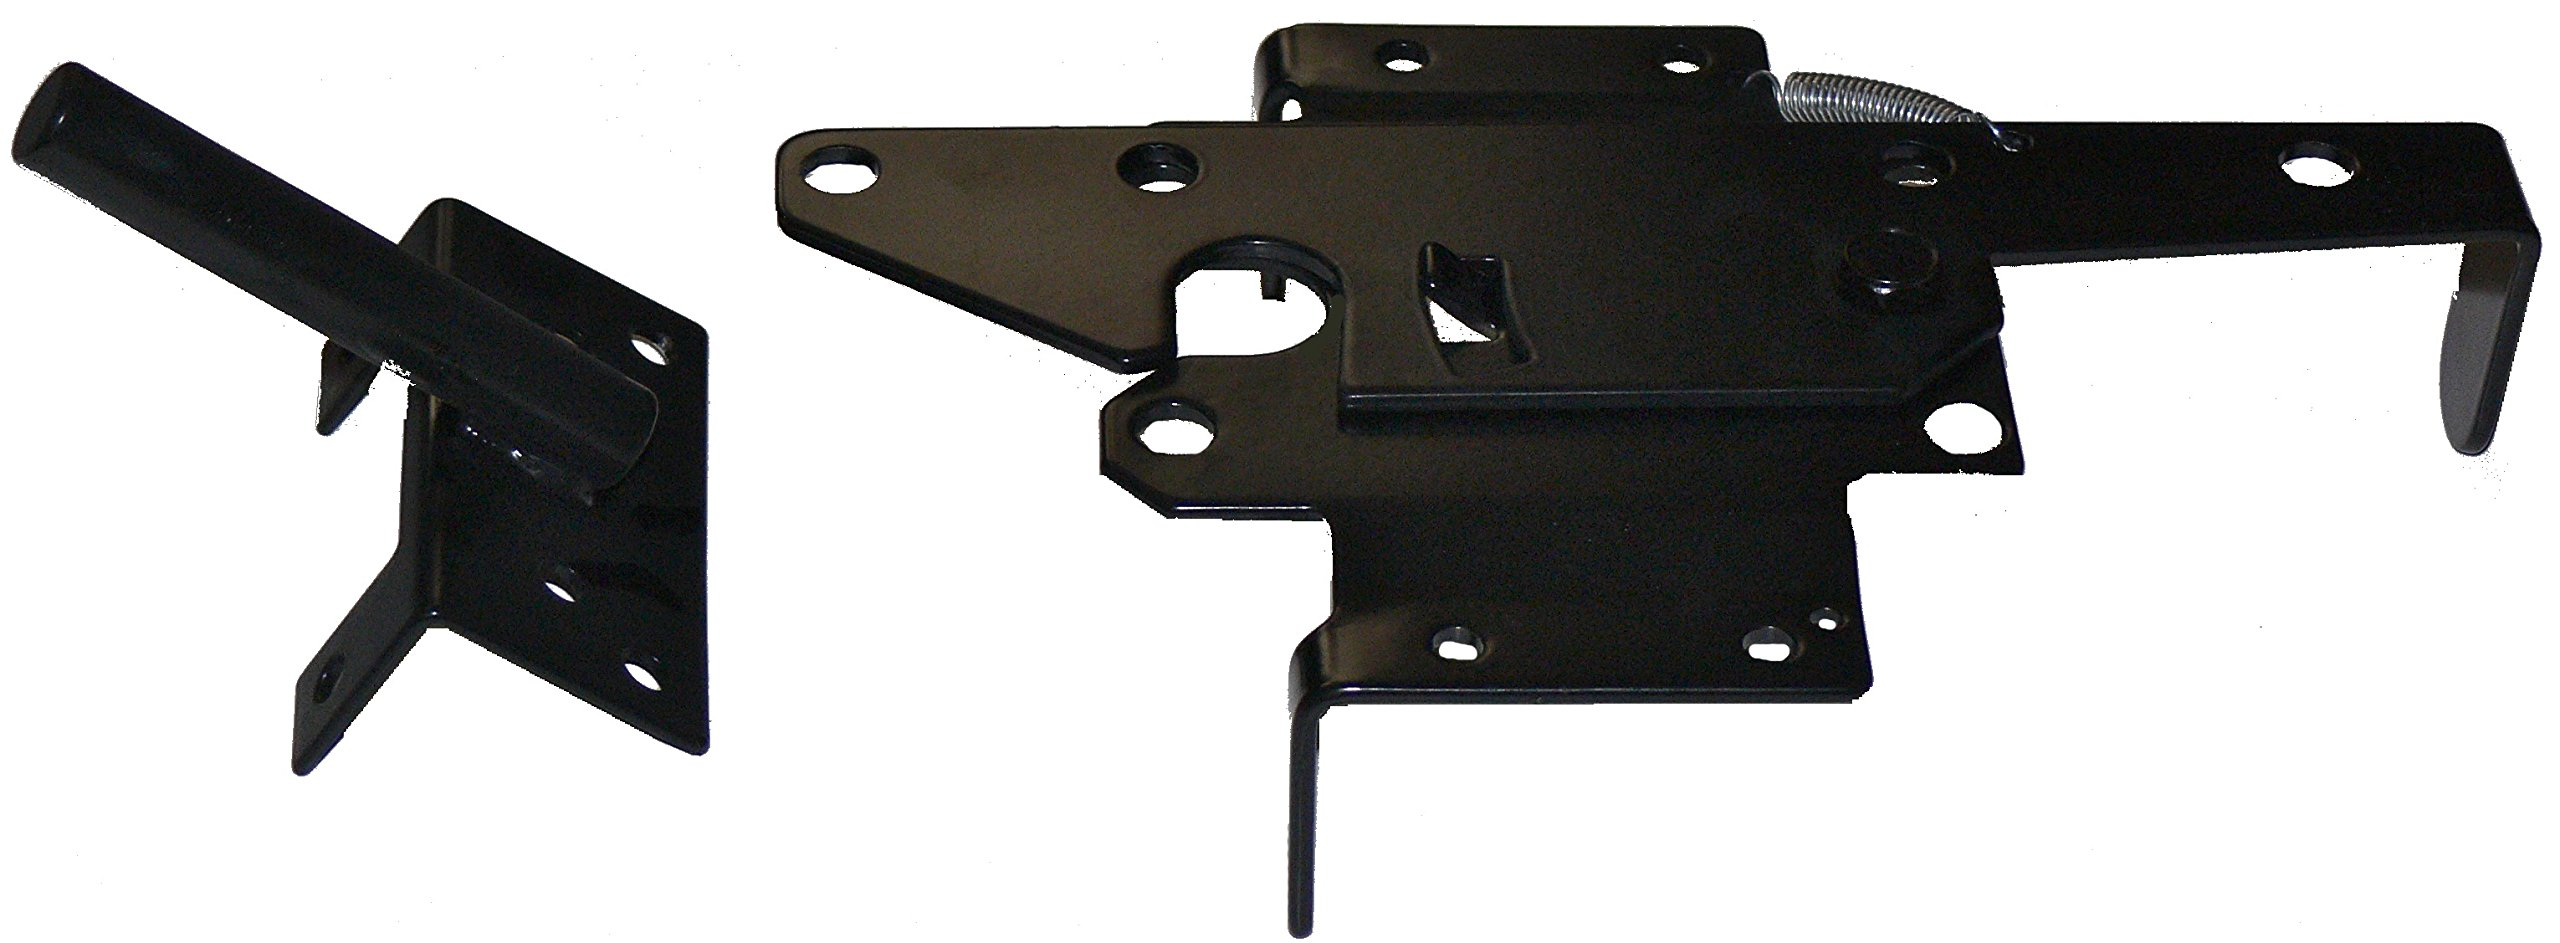 Vinyl Fence Gate Double Gate Hardware Kit Black (for Vinyl, PVC etc Fencing) - Double Fence Gate Kit has 4 Hinges, 1 Latch, and 1 Drop Rod